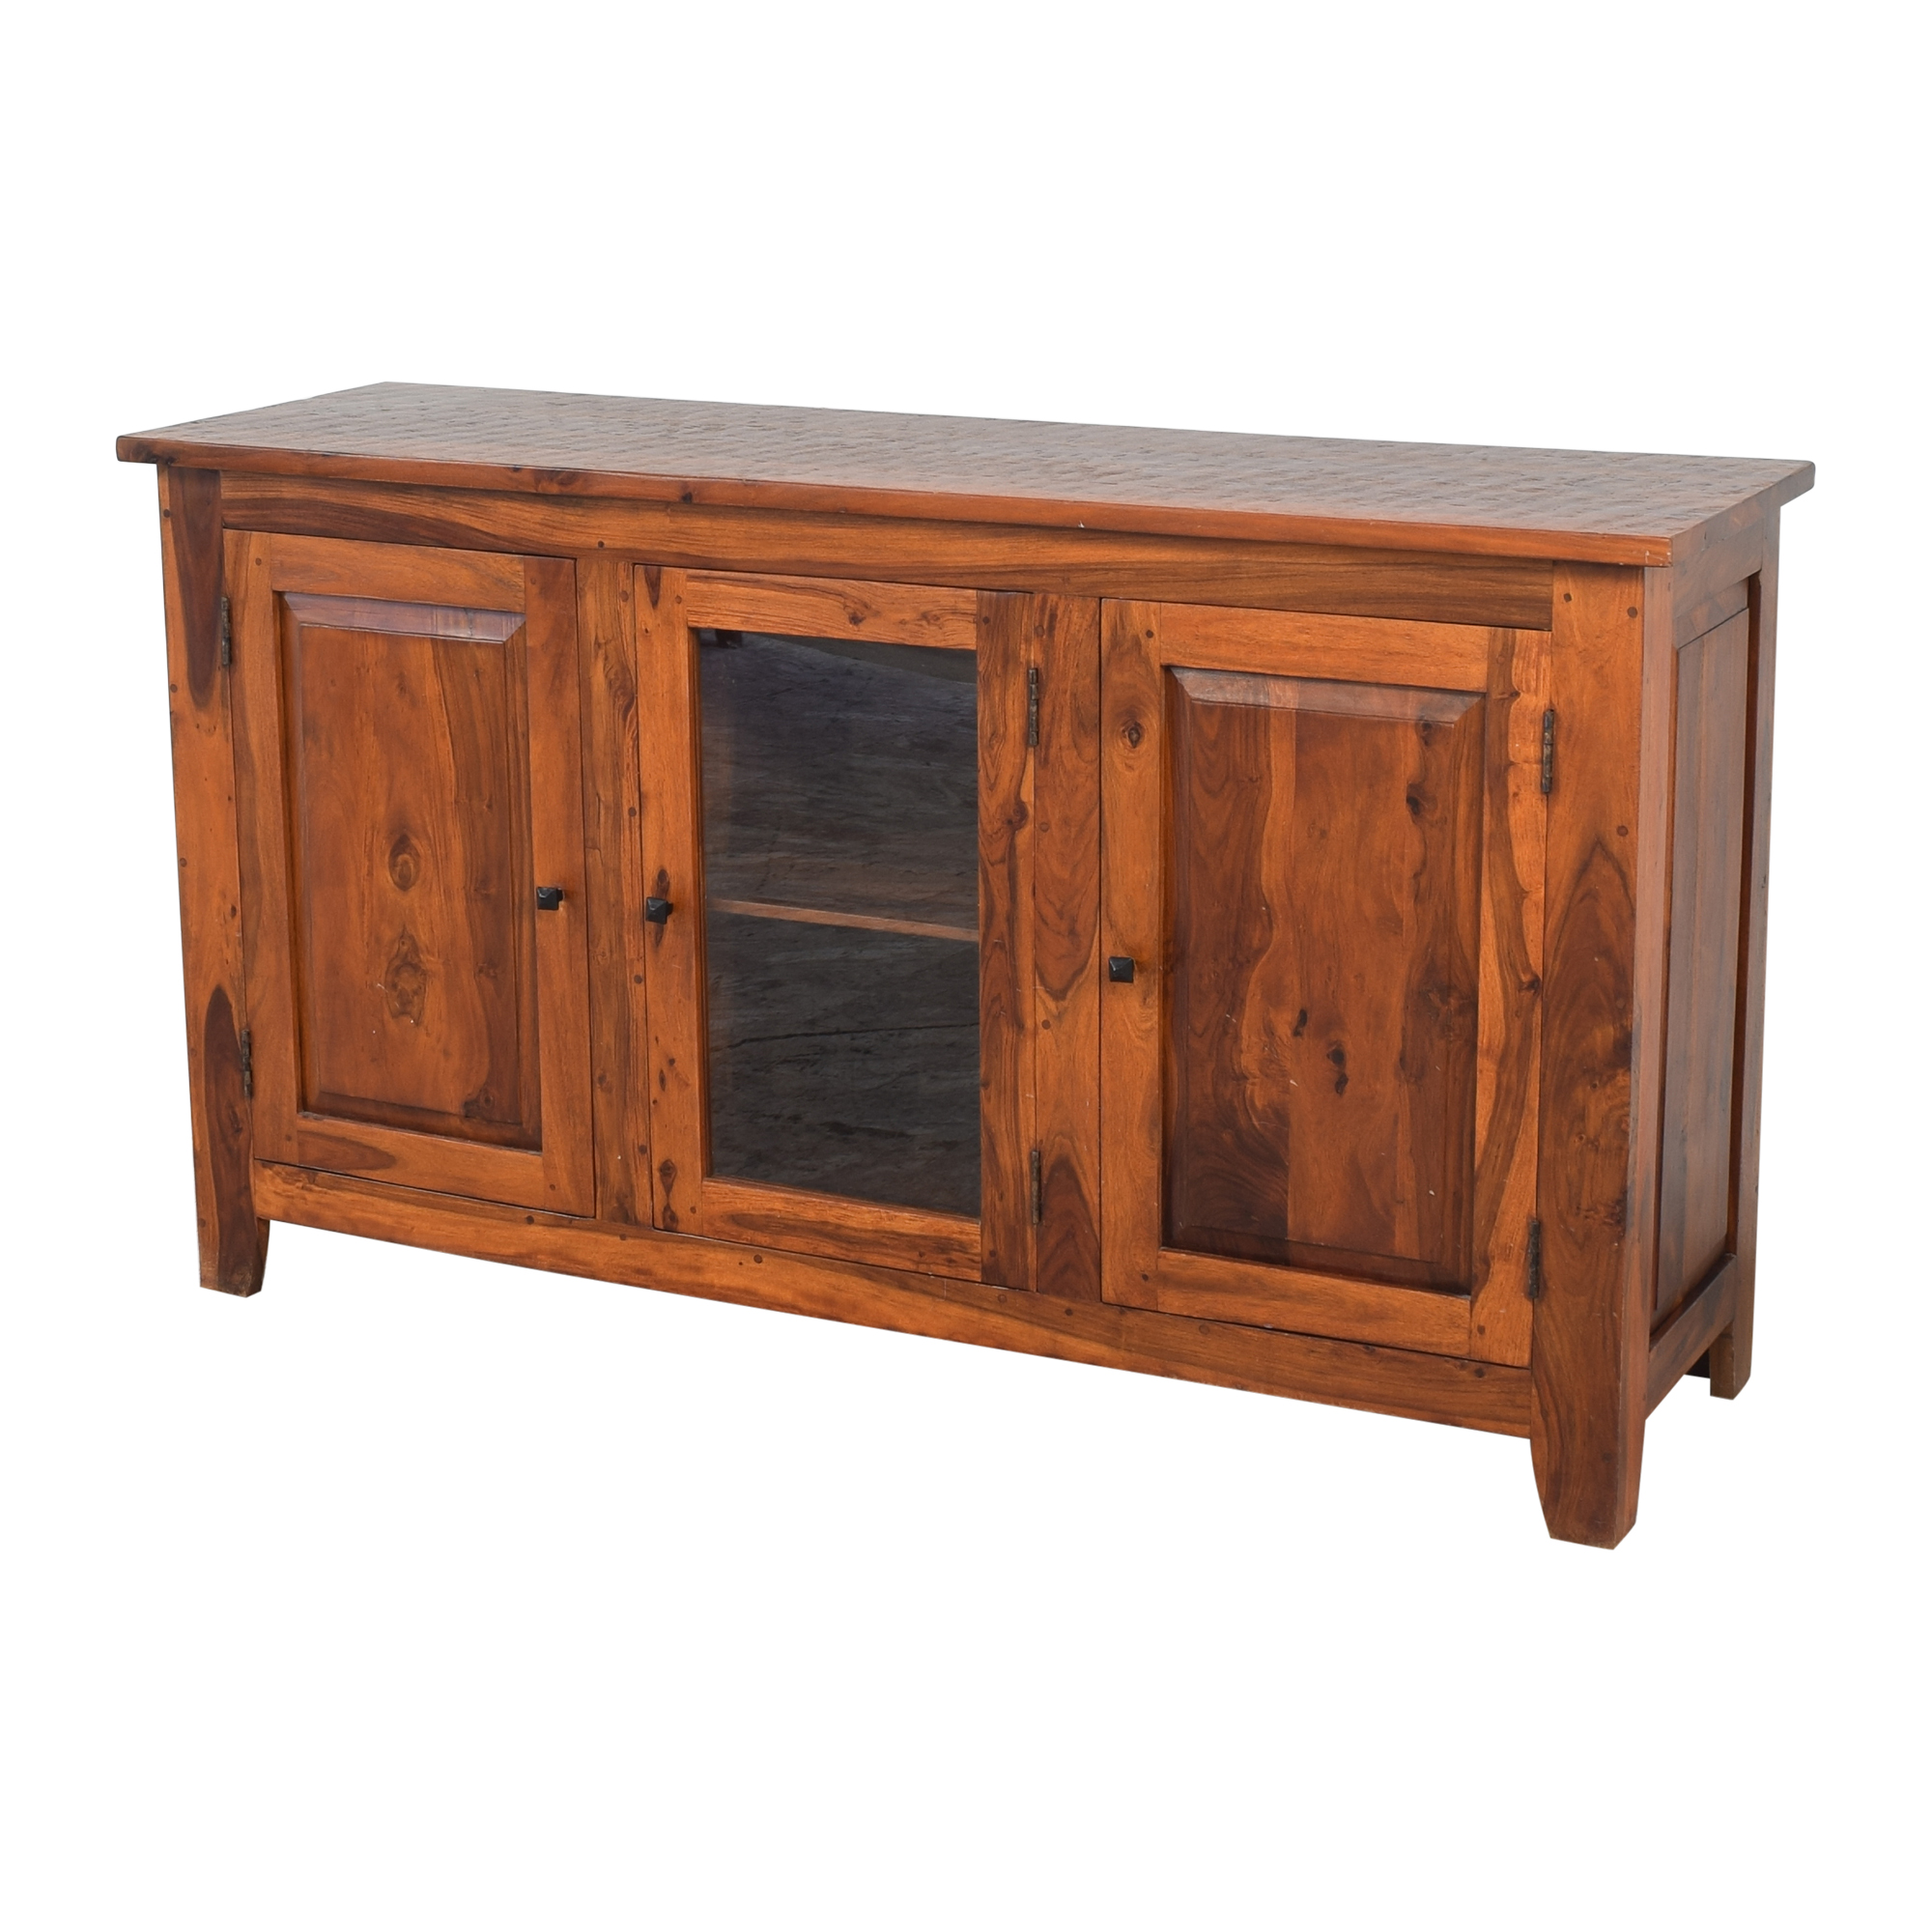 Lillian August Lillian August Provence Sideboard discount